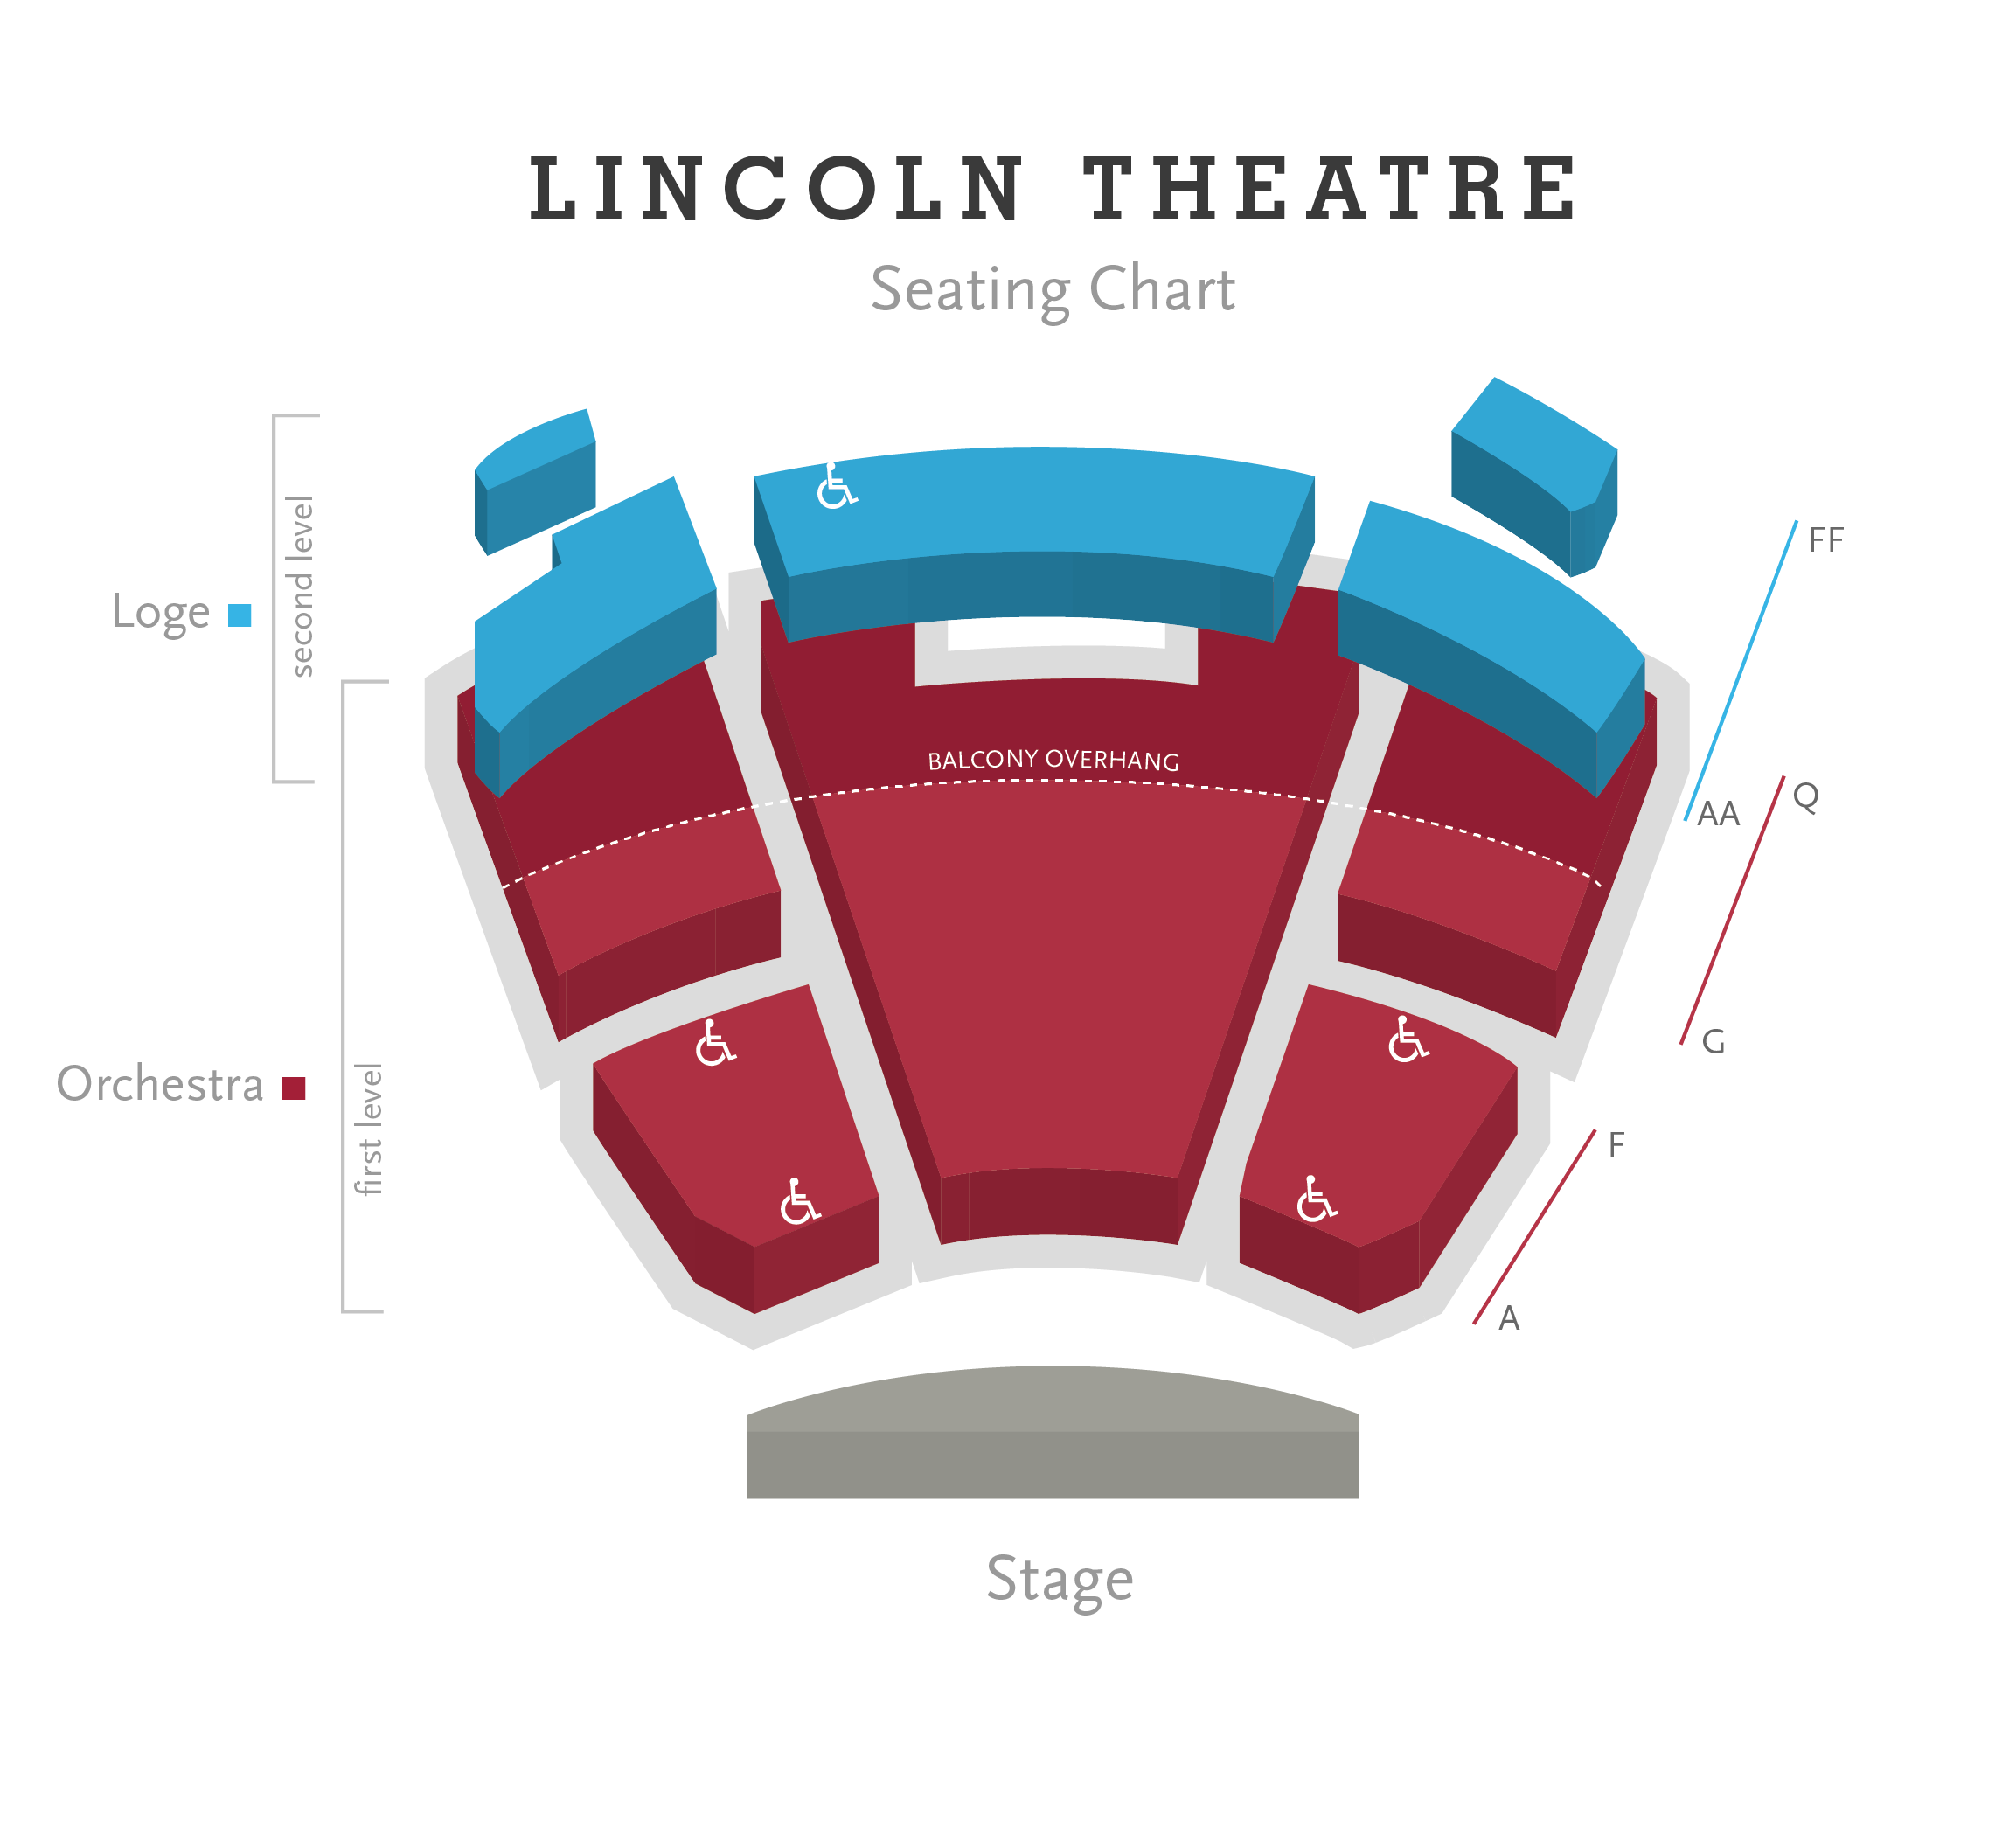 Lincoln Theatre Seating Chart.png